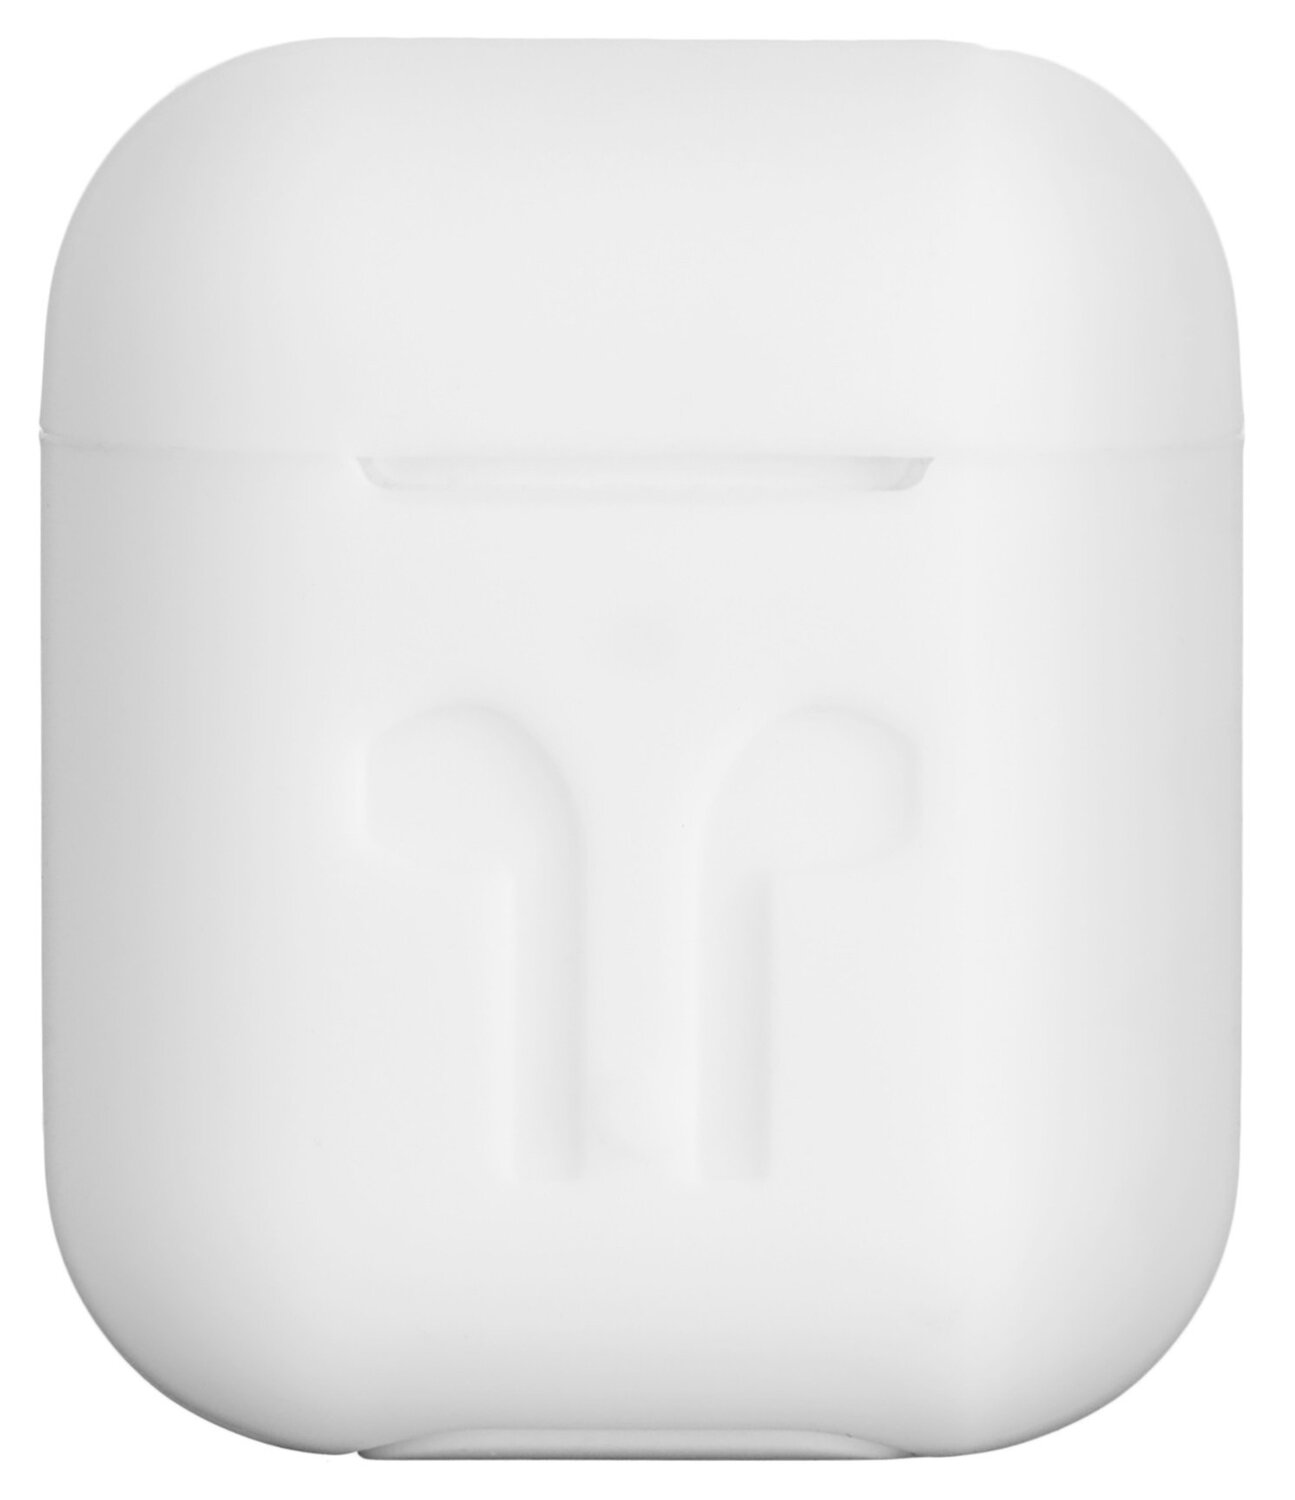 Чехол 2Е для Apple AirPods Pure Color Silicone (3mm) Imprint White фото 2